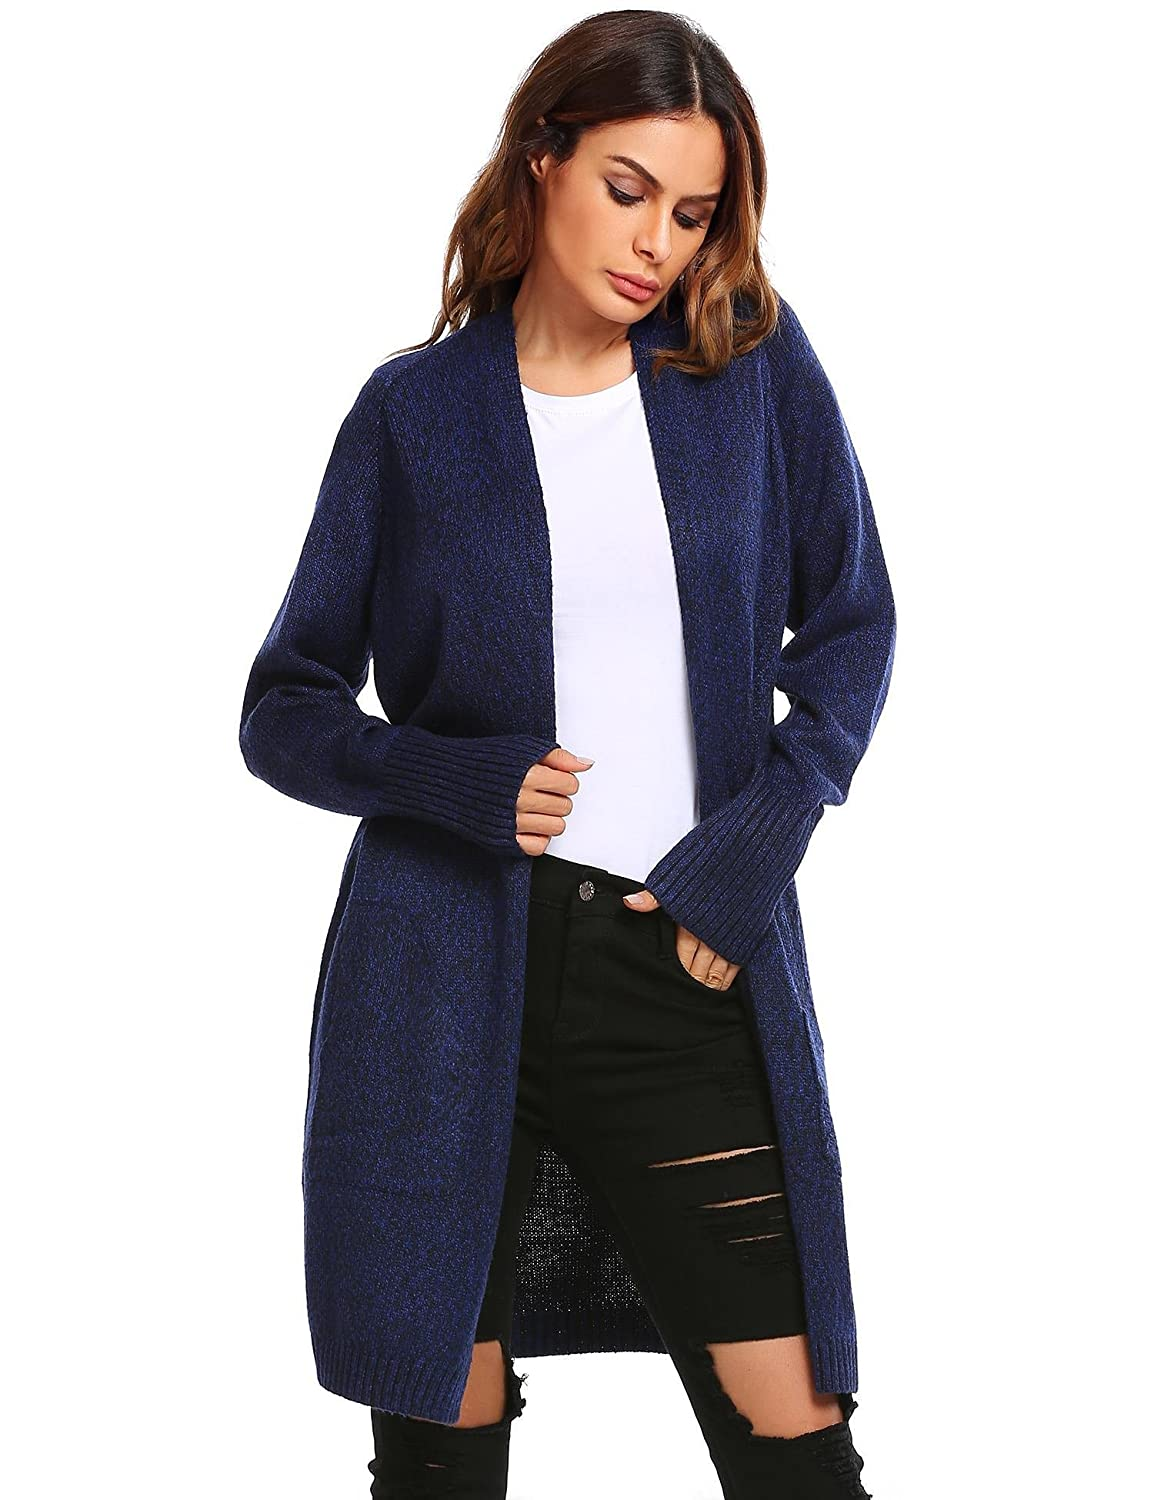 ELOVER Womens Classic Button Down Pocket Knit Long Cardigan Sweater Coat L-XXL at Amazon Womens Clothing store: